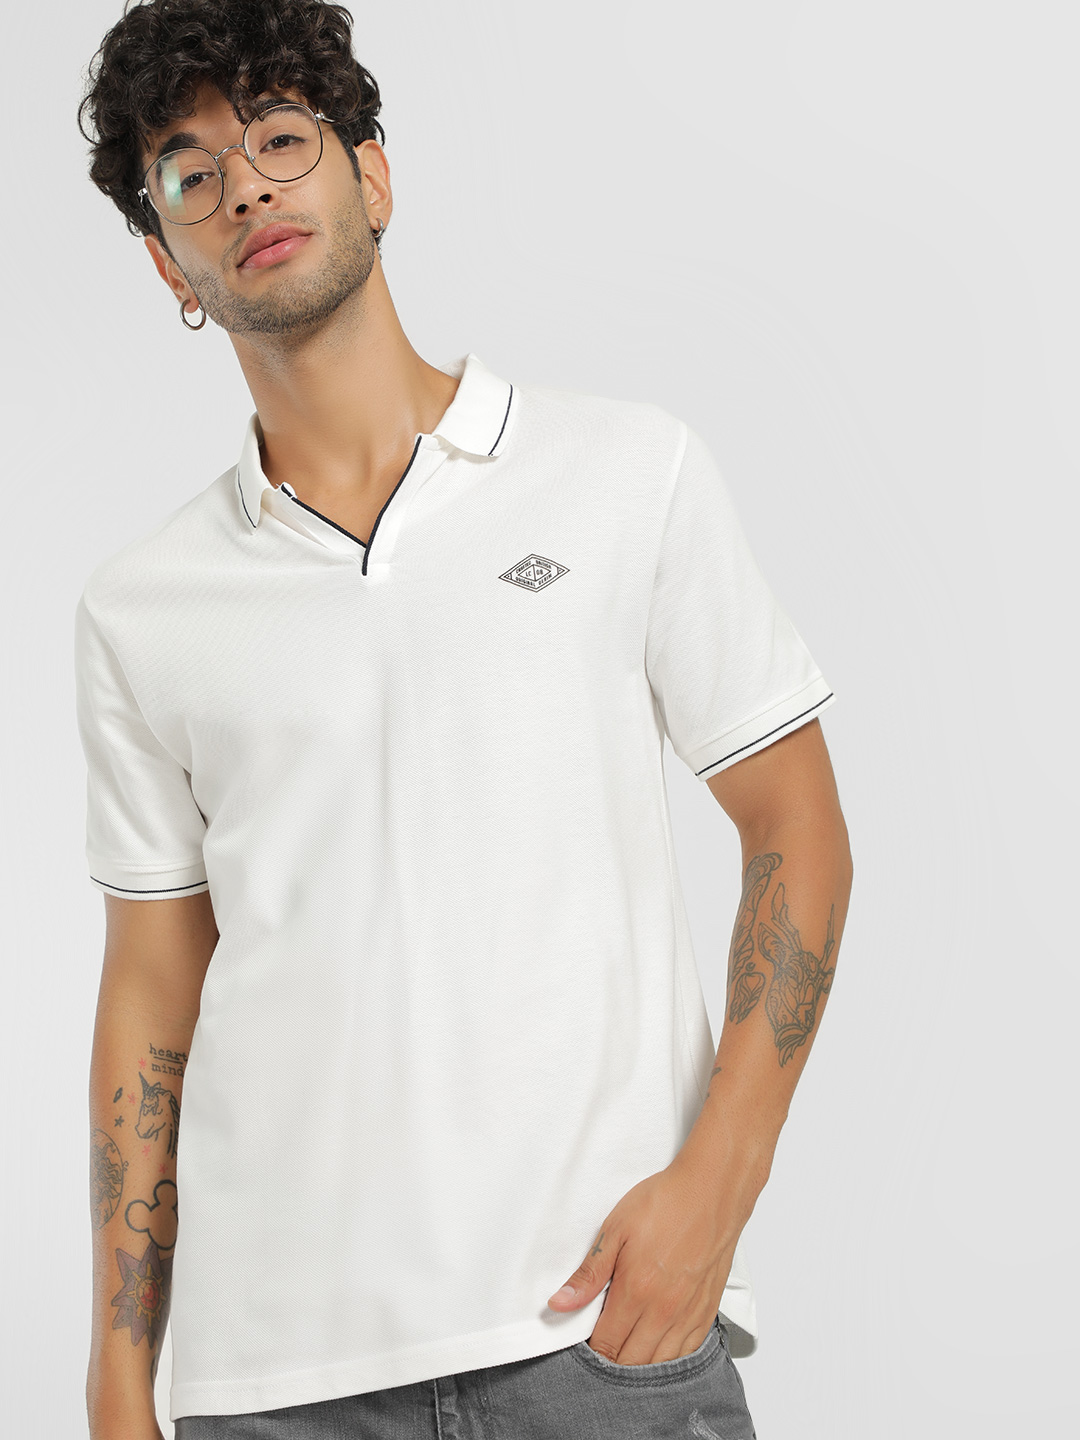 Lee Cooper Off White Contrast Shoulder Stripe Polo T-Shirt 1